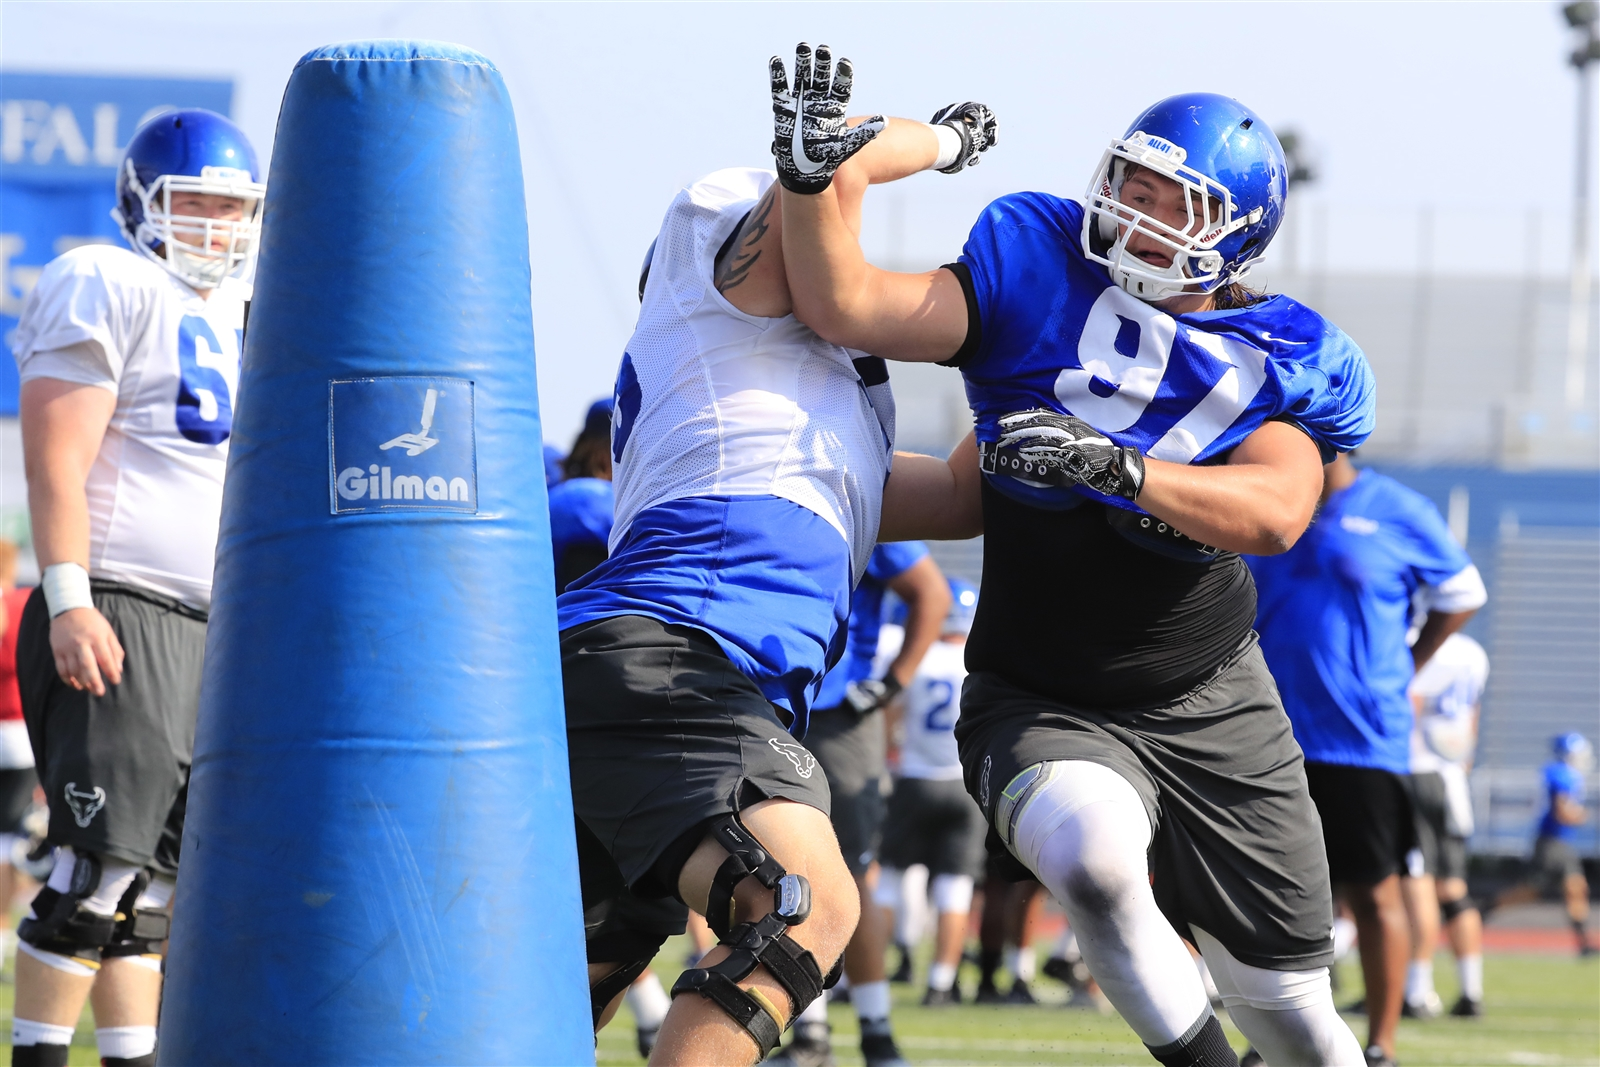 UB's Jake Fuzak during practice.